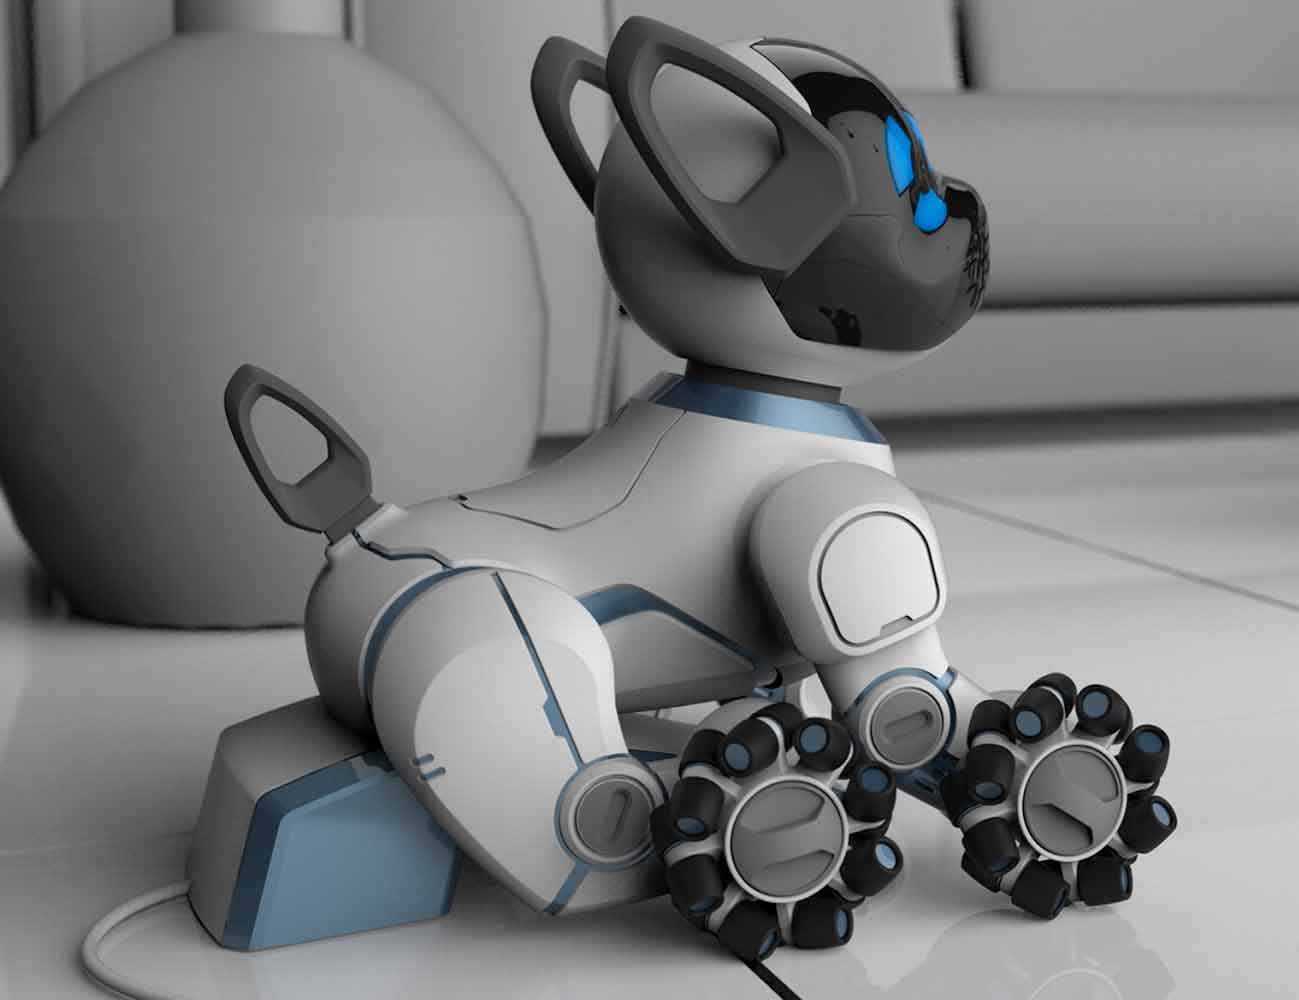 Best robot dog [Aug  2019] – Smart Products Review